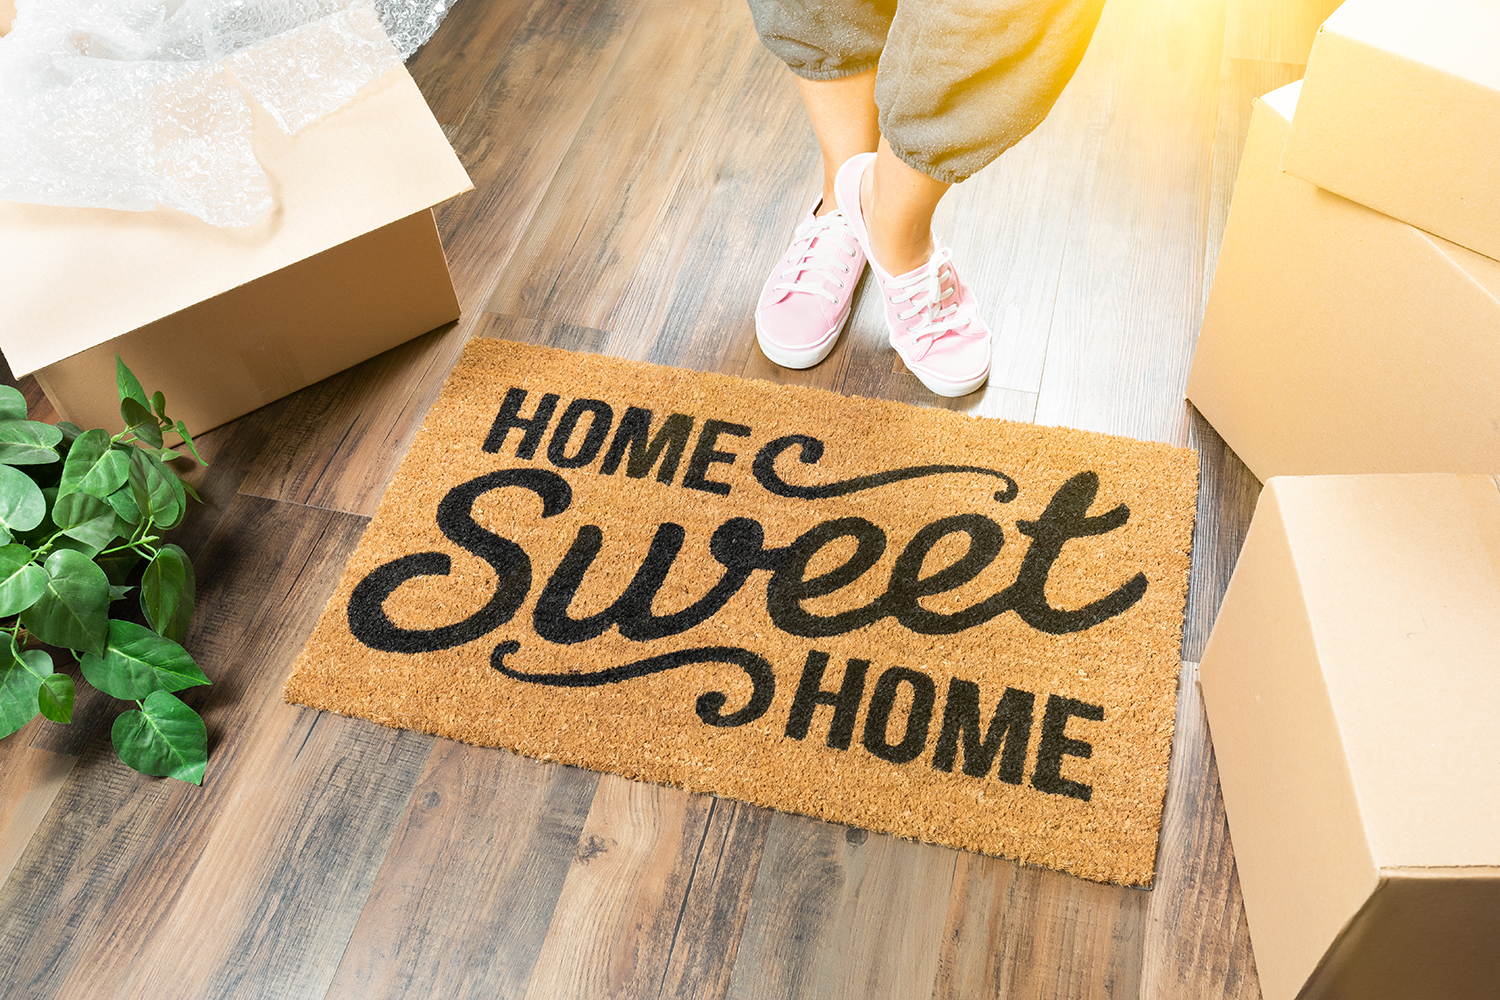 photo of a welcome mat with the message Home Sweet Home, symbolizing a new home purchase, done with the help of an experienced real estate lawyer